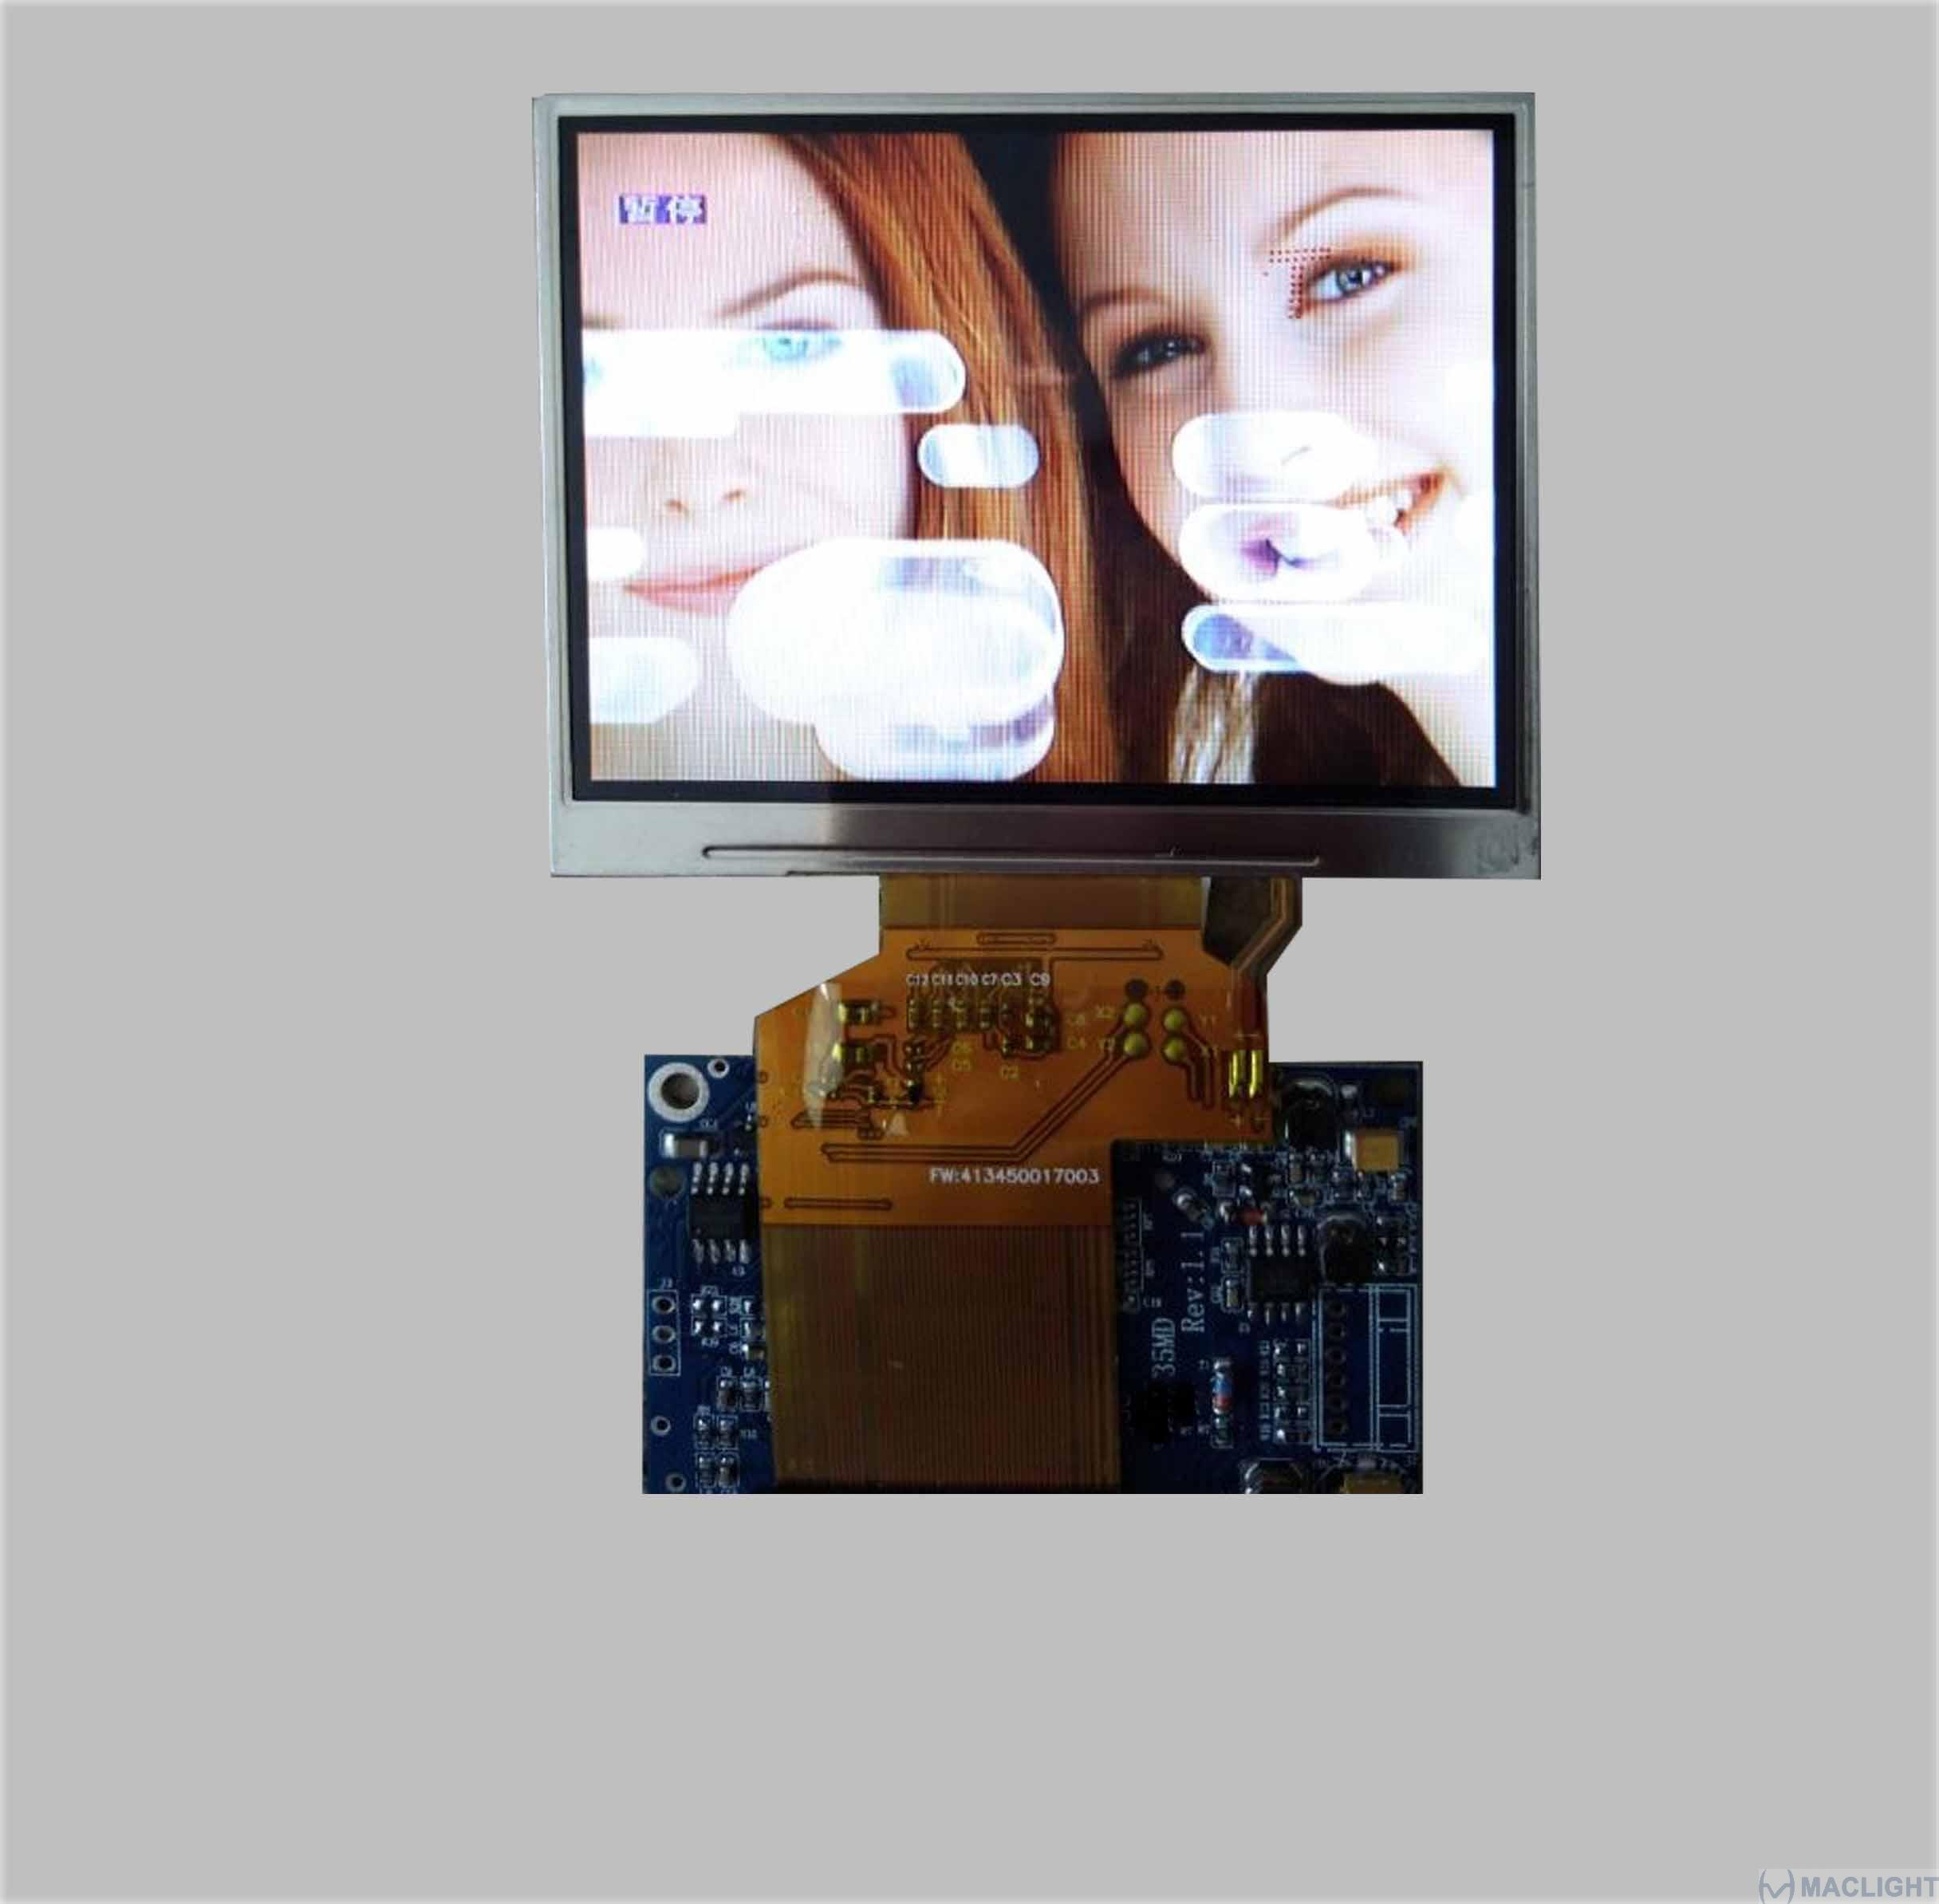 3.5 inch tft lcd complete display solution